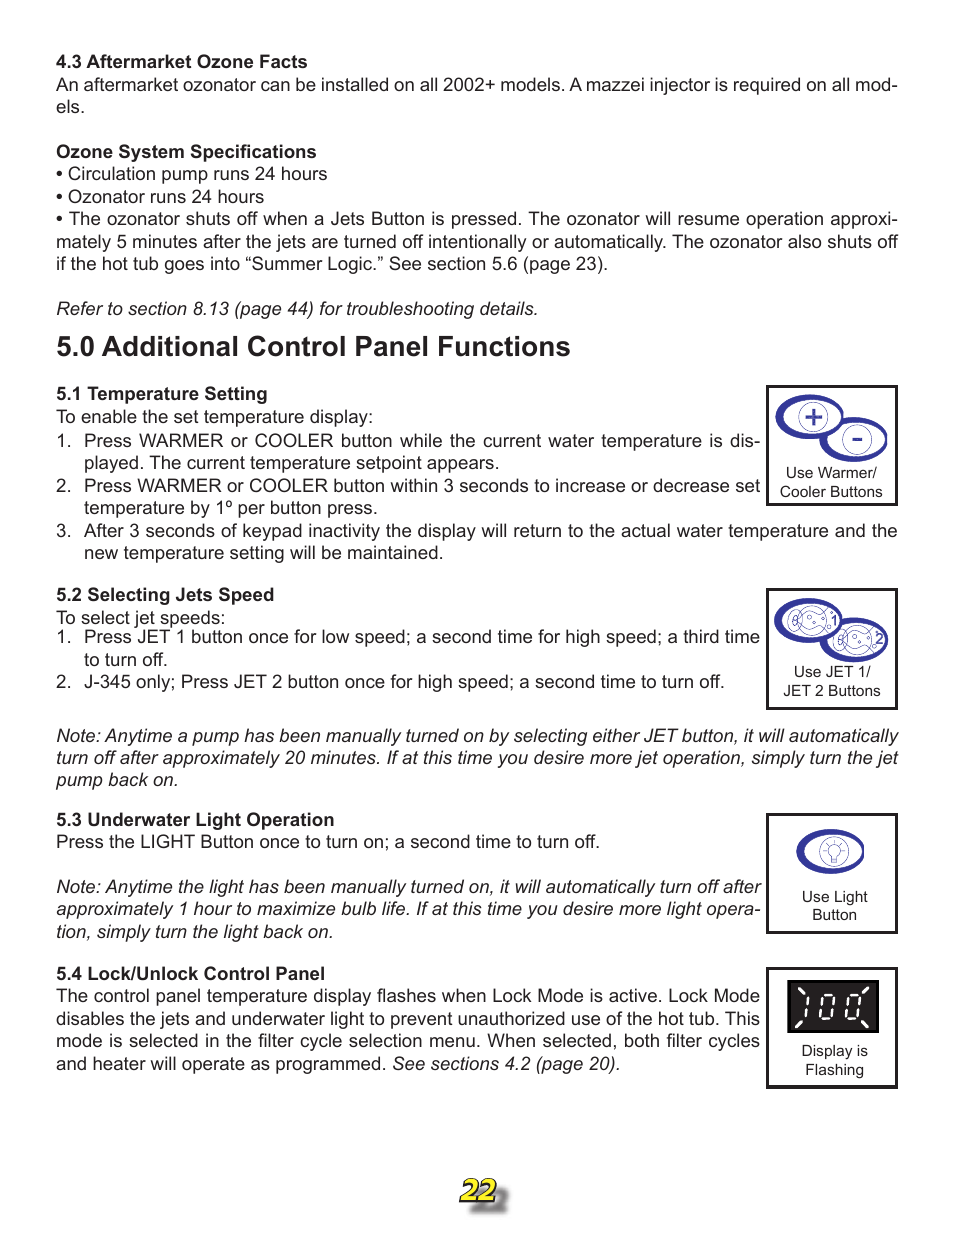 3 aftermarket ozone facts, 0 additional control panel